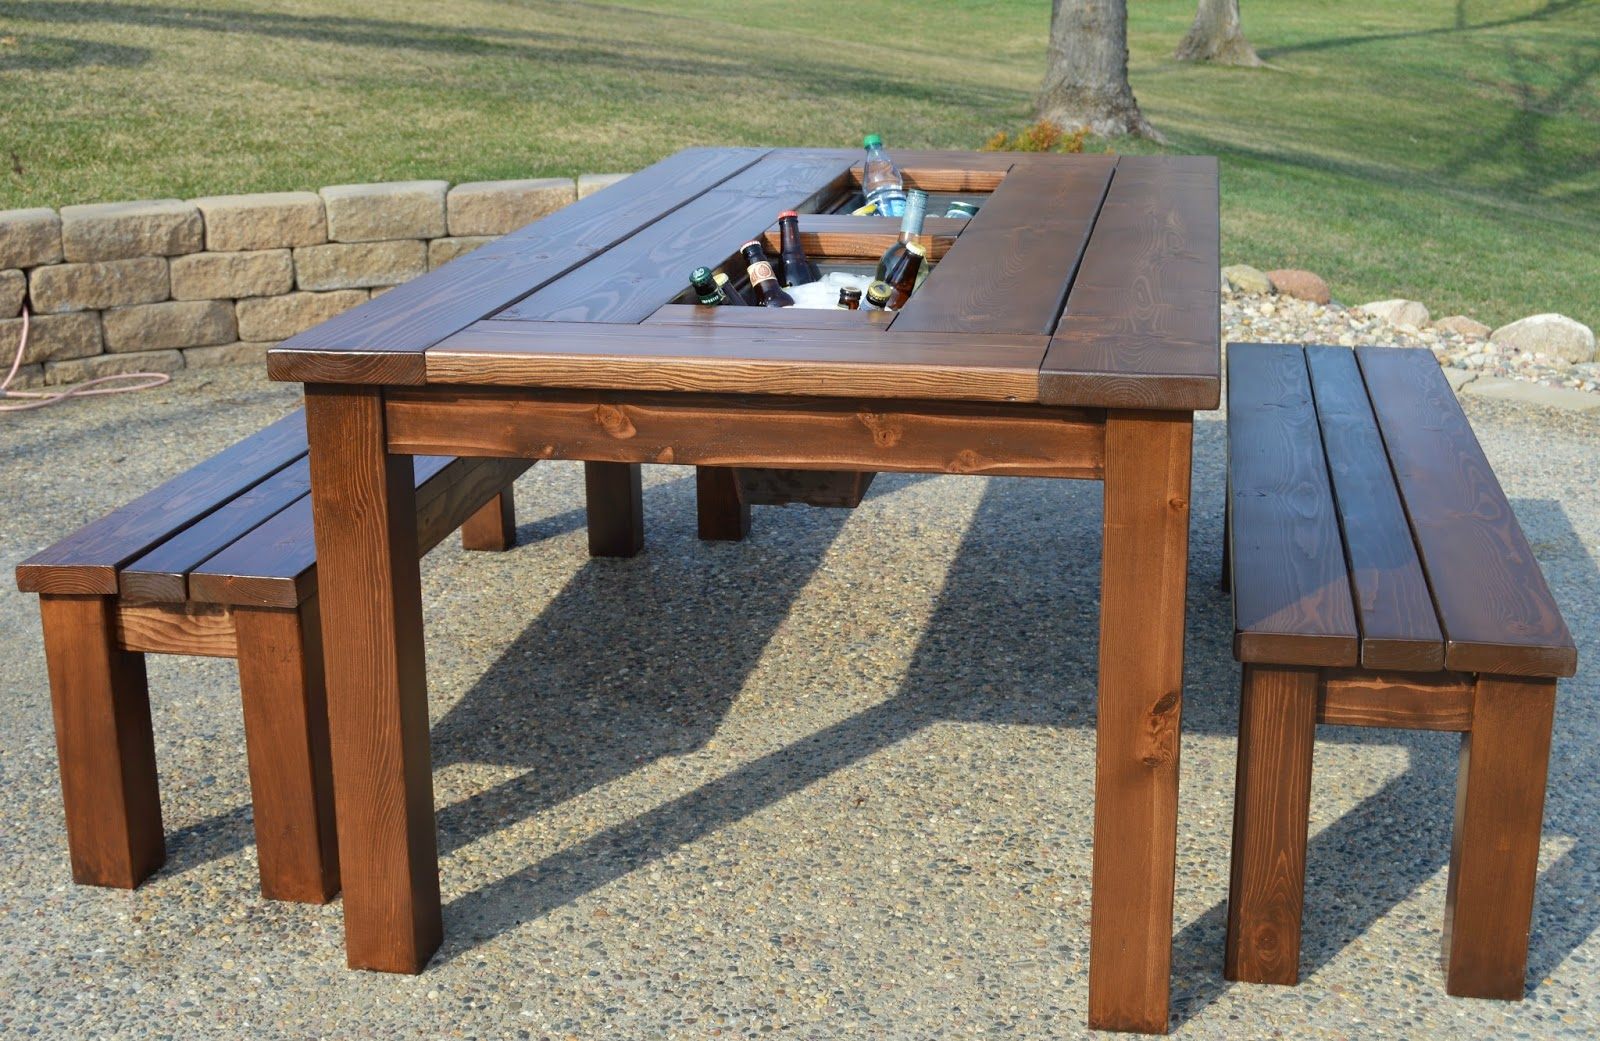 KRUSES WORKSHOP Patio Party Table With Built In Beer